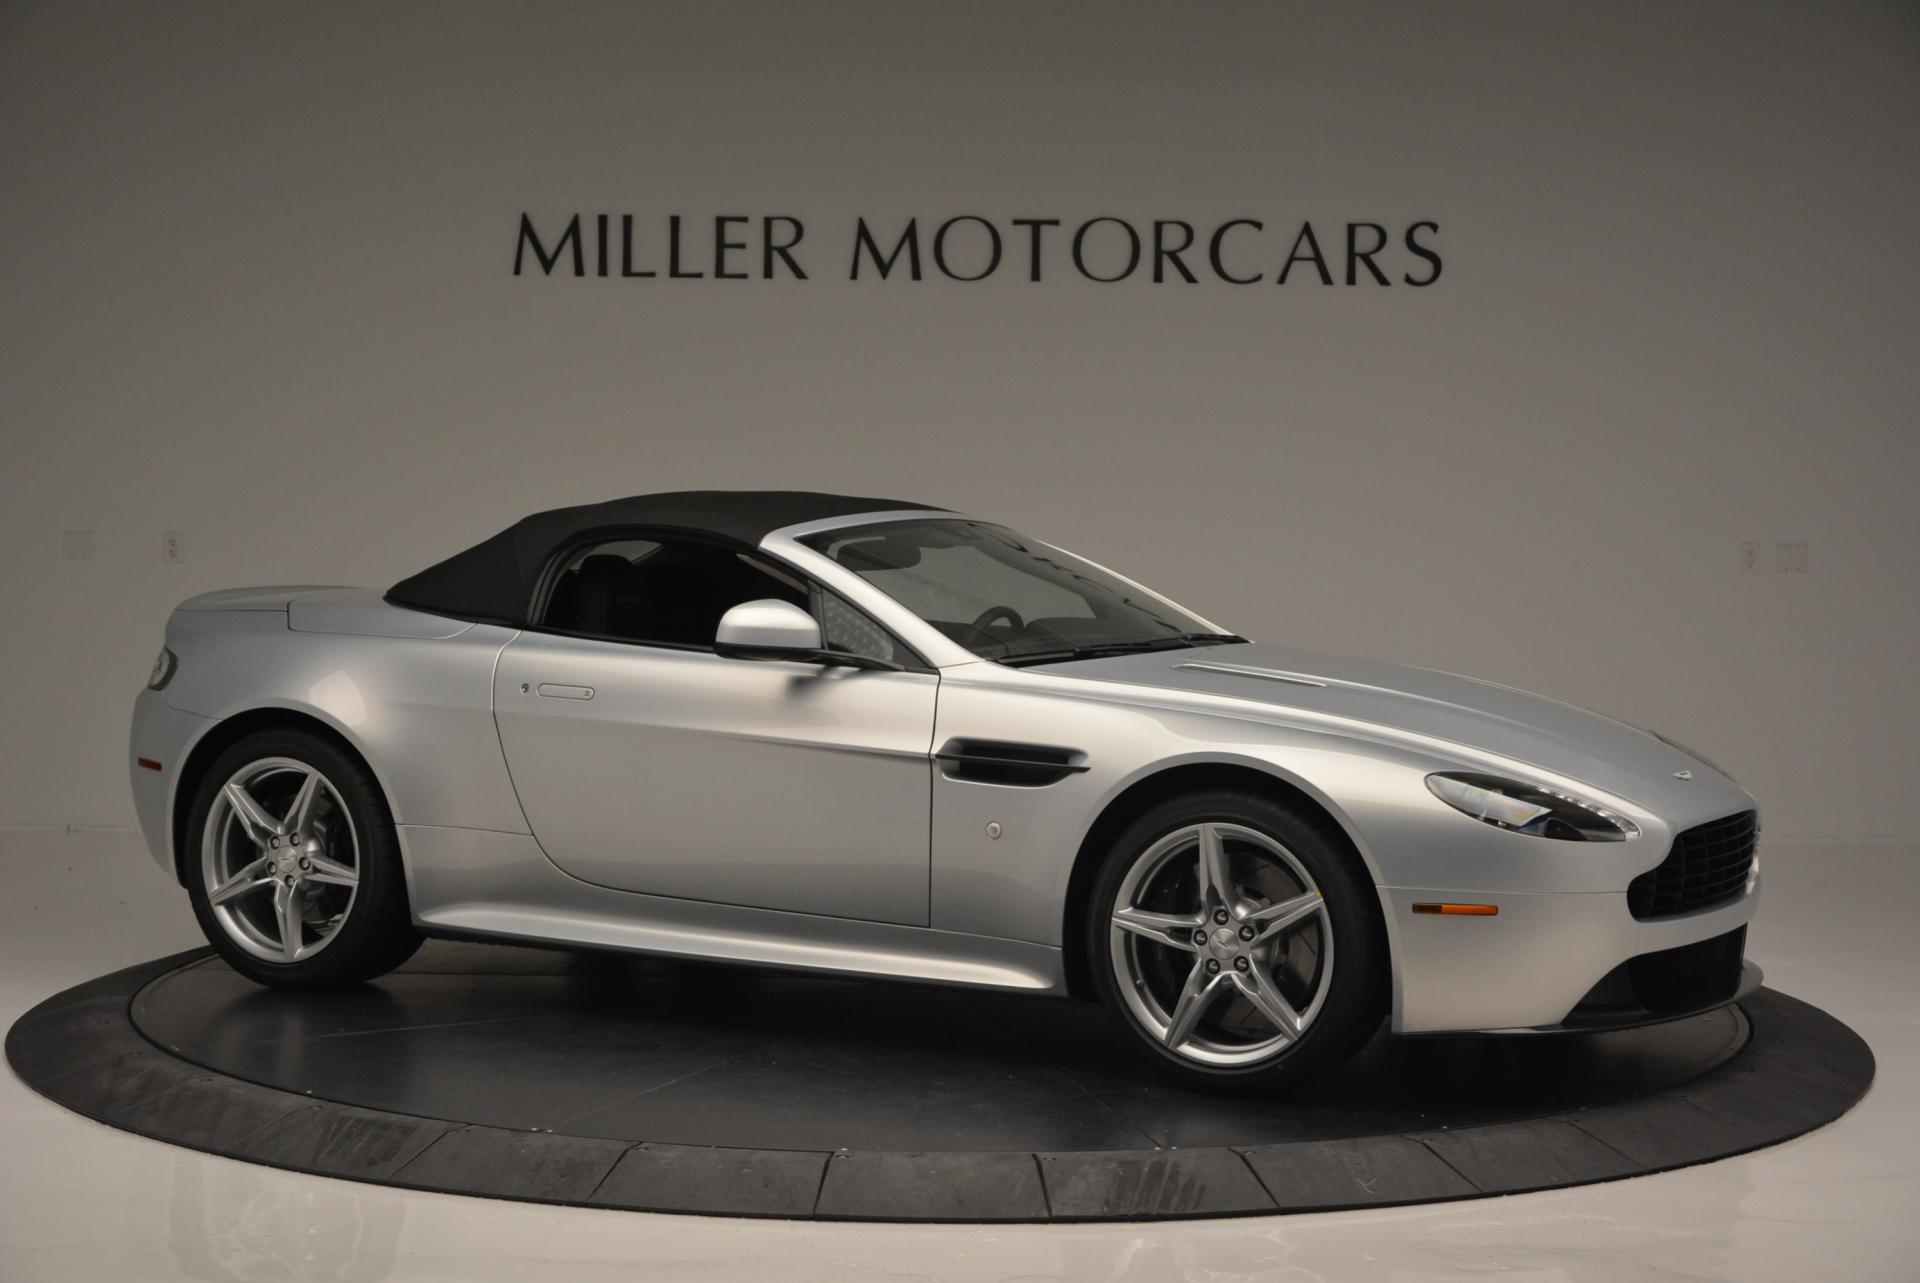 New 2016 Aston Martin V8 Vantage GTS Roadster For Sale In Westport, CT 90_p20